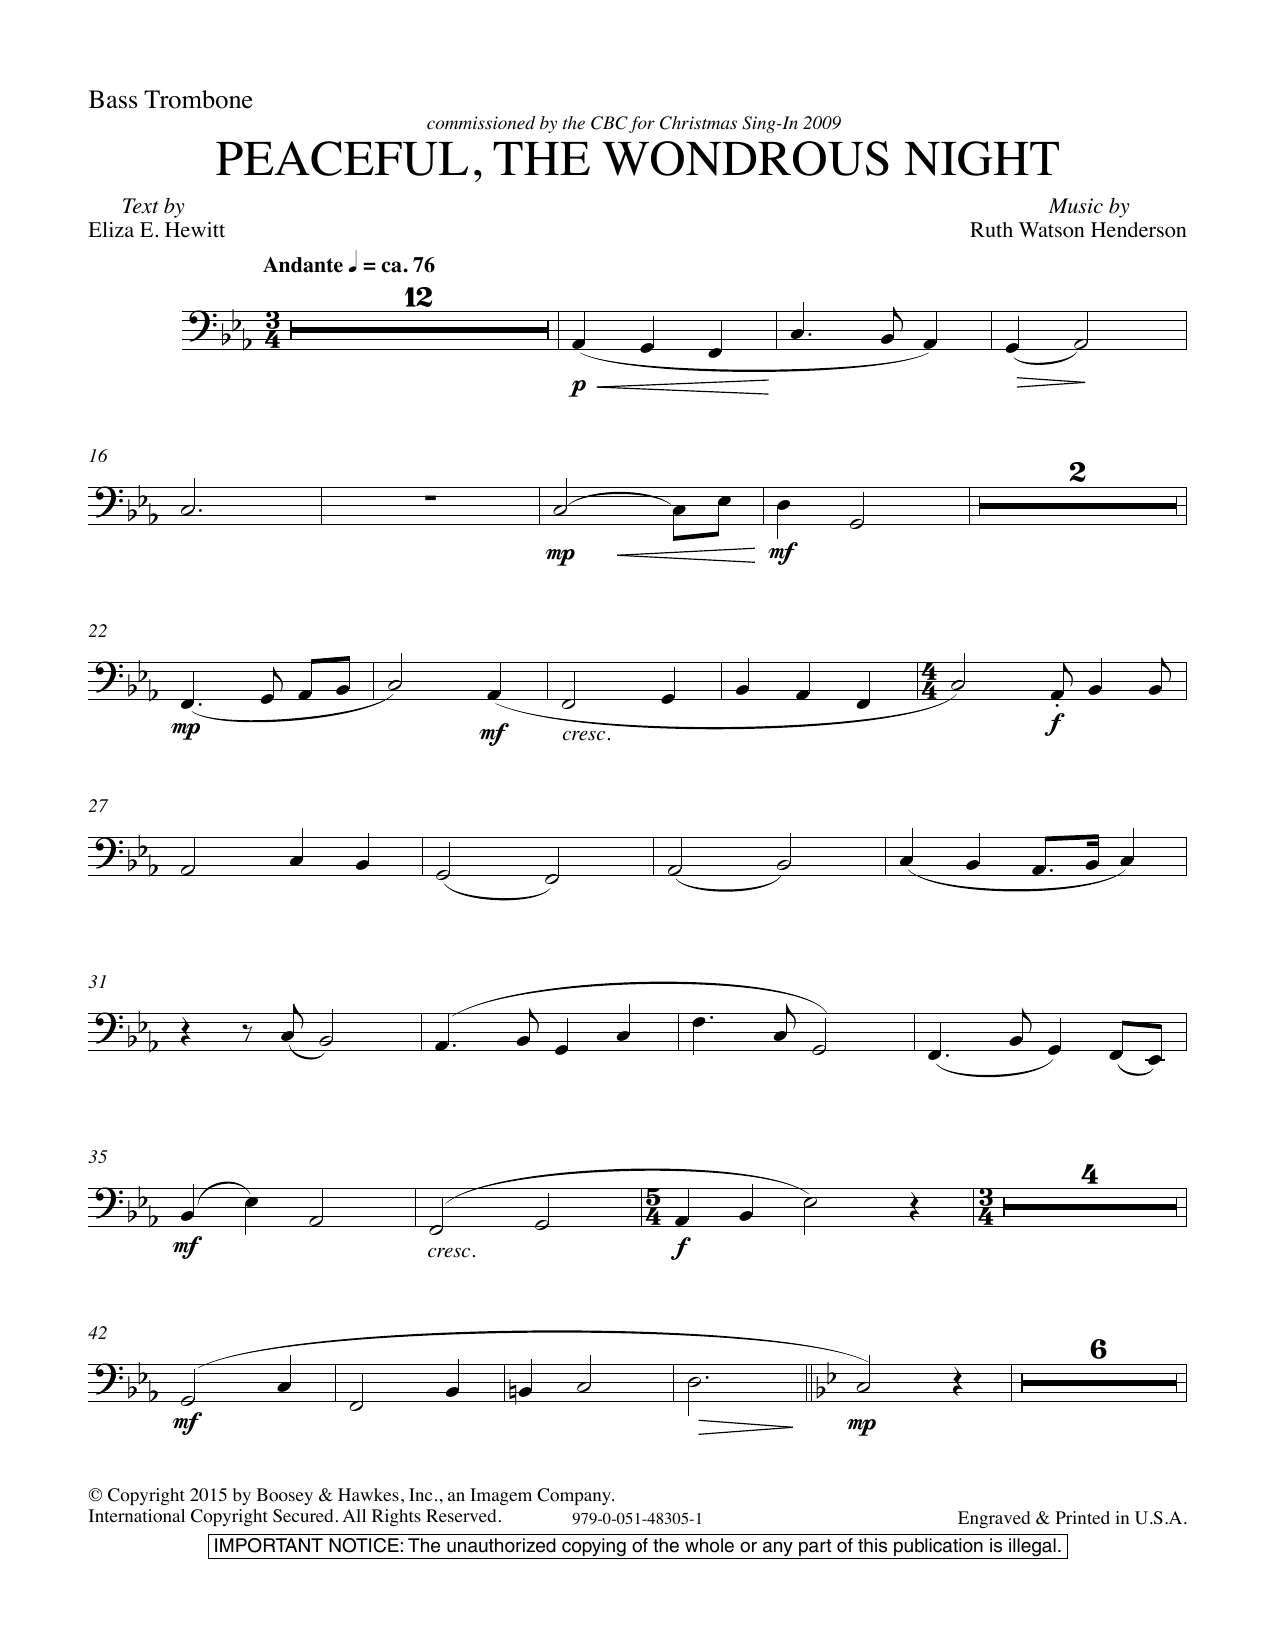 Ruth Watson Henderson Peaceful the Wondrous Night - Bass Trombone sheet music notes and chords. Download Printable PDF.